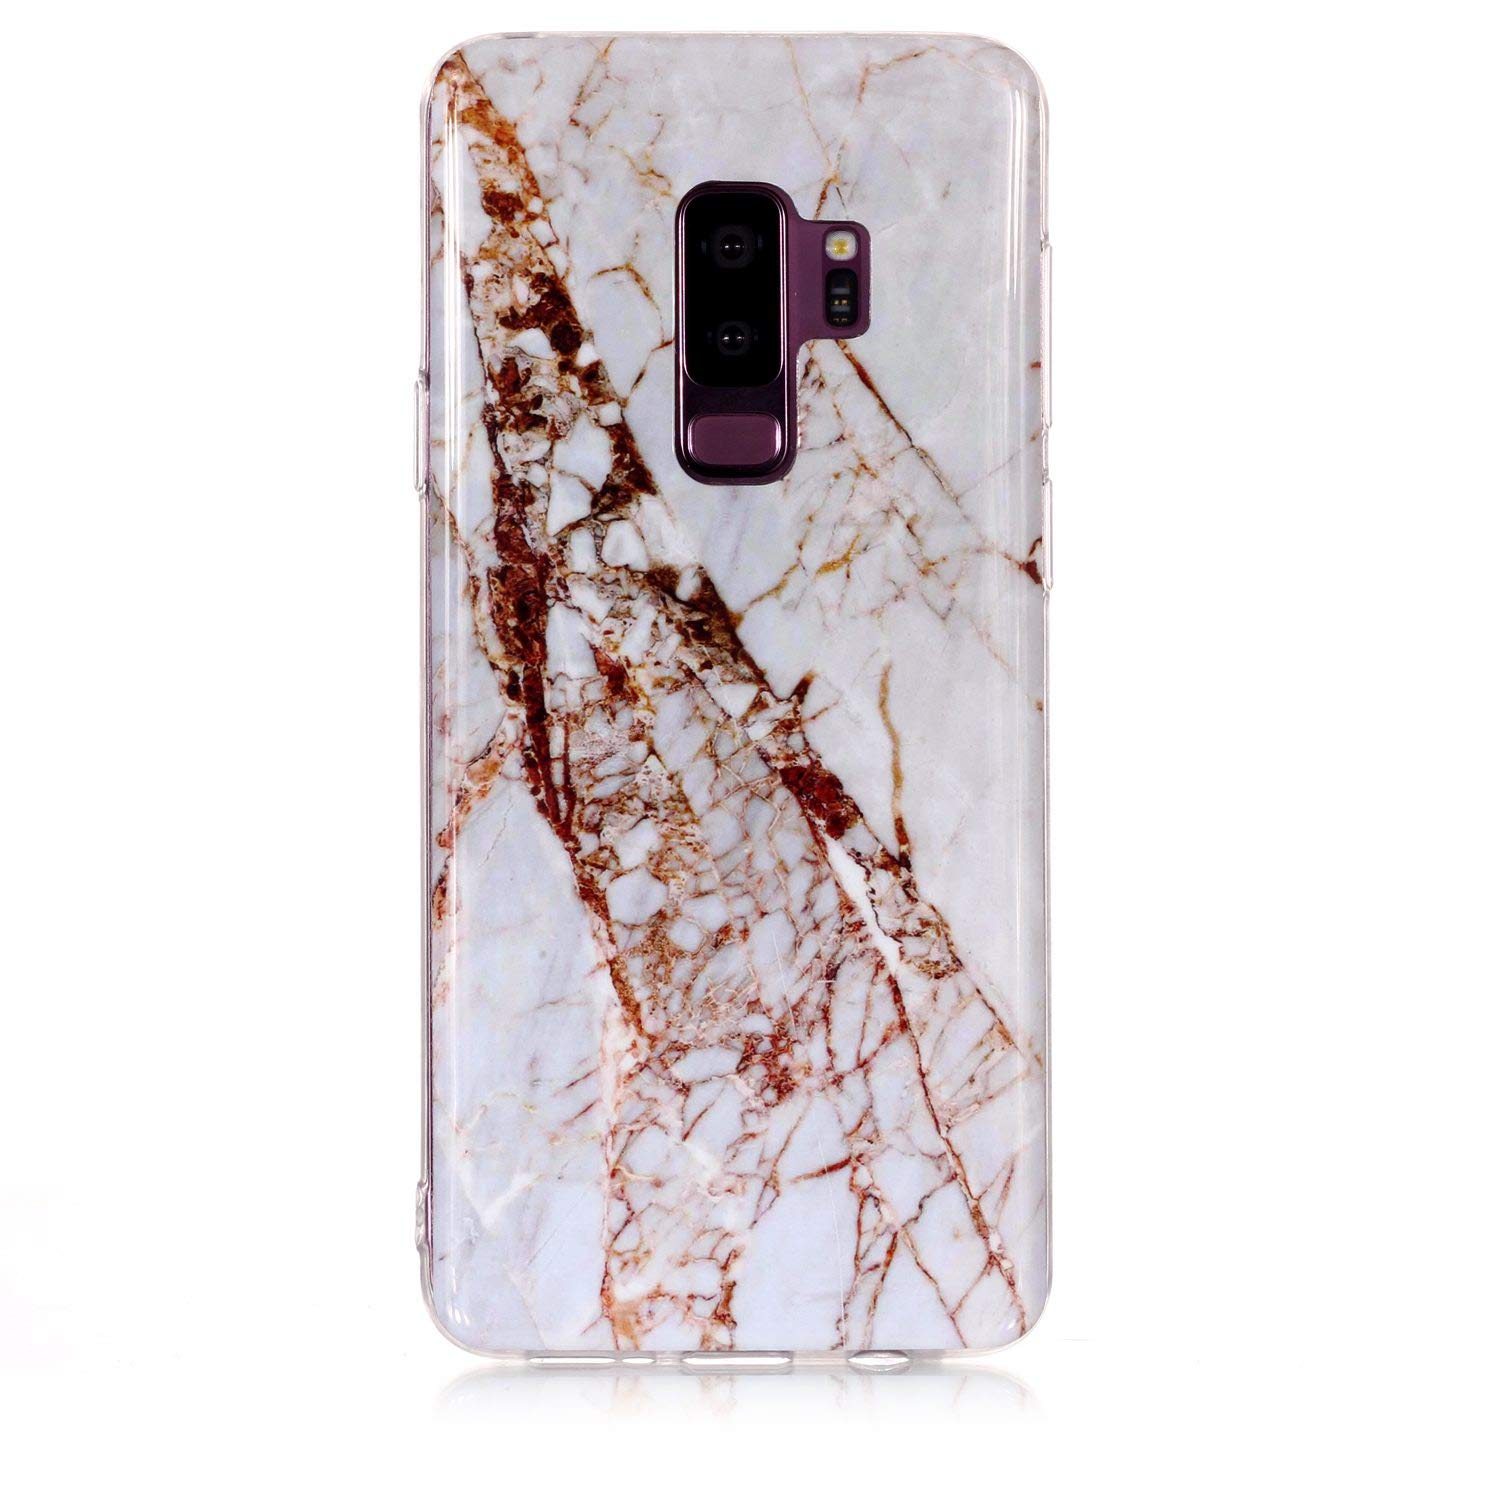 for Samsung Galaxy S9 Plus Marble Case with Screen Protector,Unique Pattern Design Skin Ultra Thin Slim Fit Soft Gel Silicone Case,QFFUN Shockproof Anti-Scratch Protective Back Cover - White by QFFUN (Image #2)